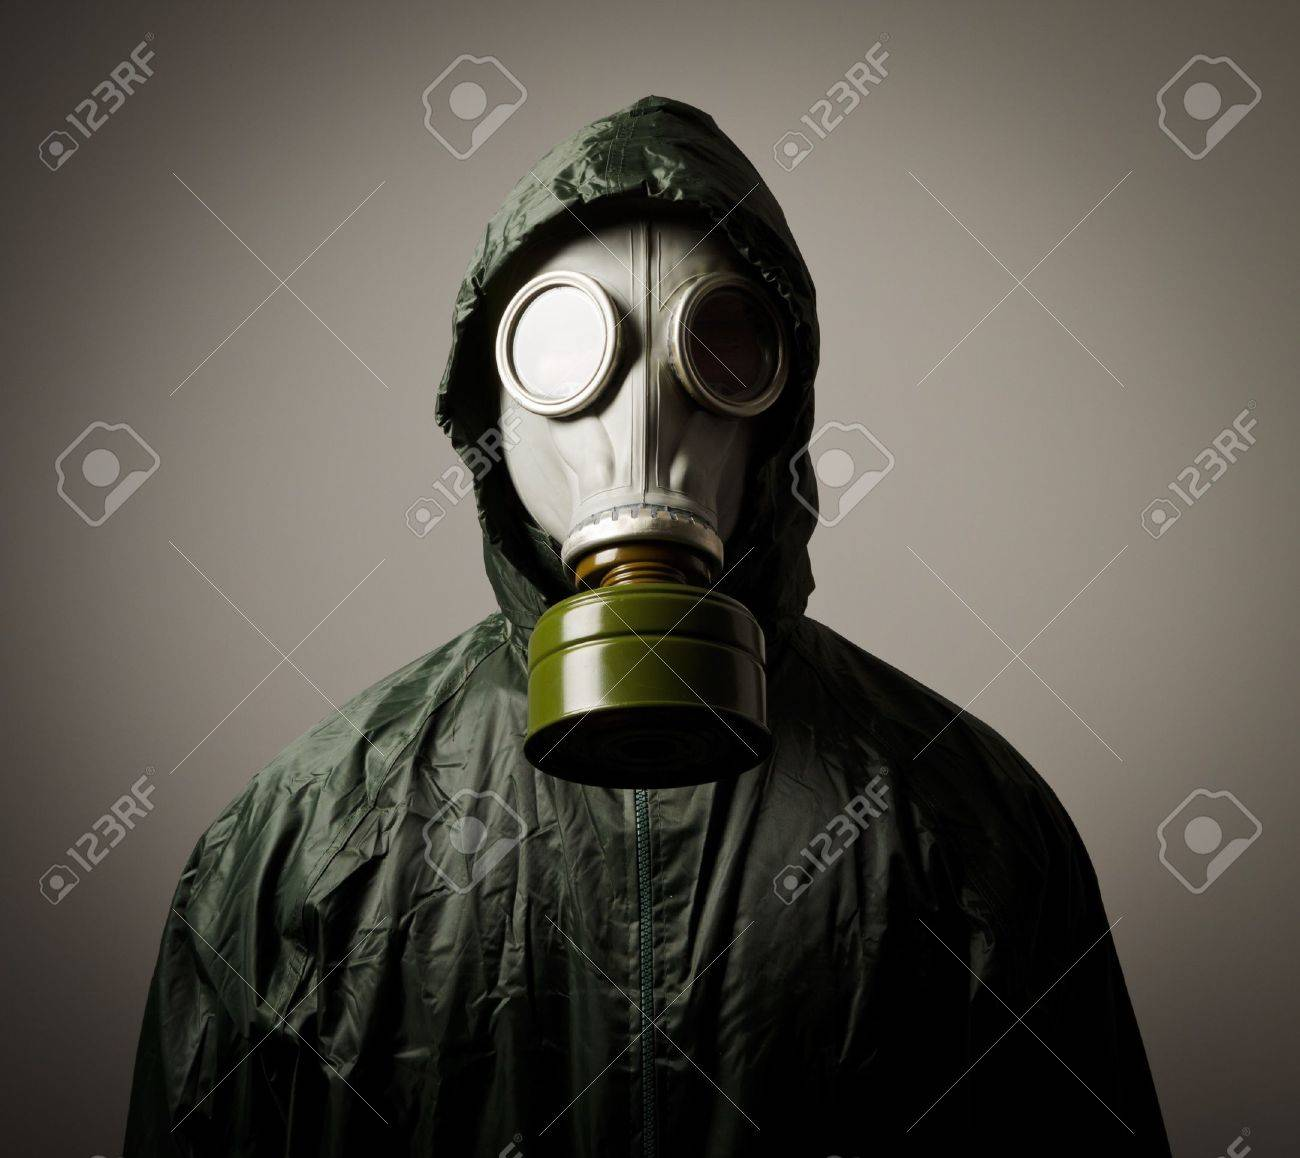 Man wearing a gas mask on his face - 20295779